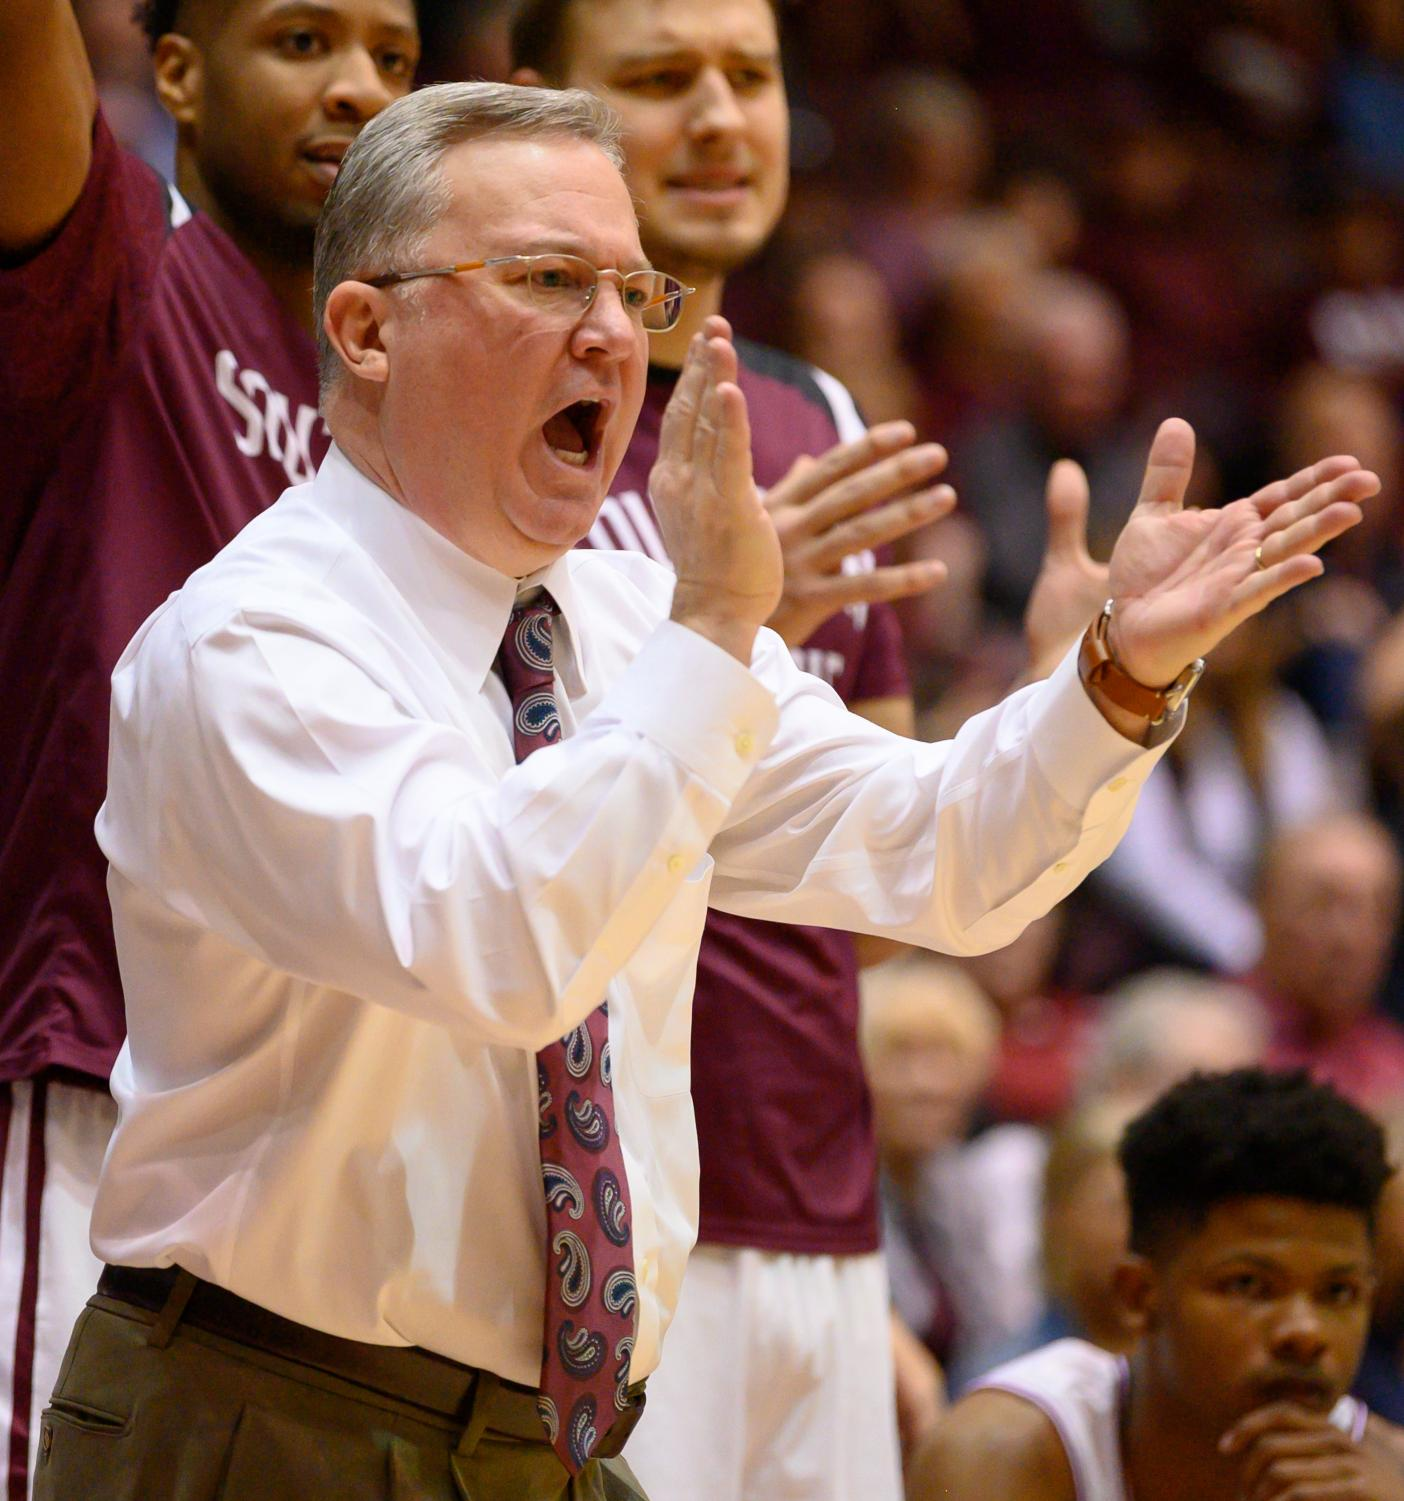 Southern+Illinois+Salukis+head+coach+Barry+Hinson+reacts+to+a+basket+on+Sunday%2C+Feb.+24%2C+2019%2C+during+a+matchup+between+the+Southern+Illinois+Salukis+and+the+Loyola+Ramblers+at+SIU+Arena.